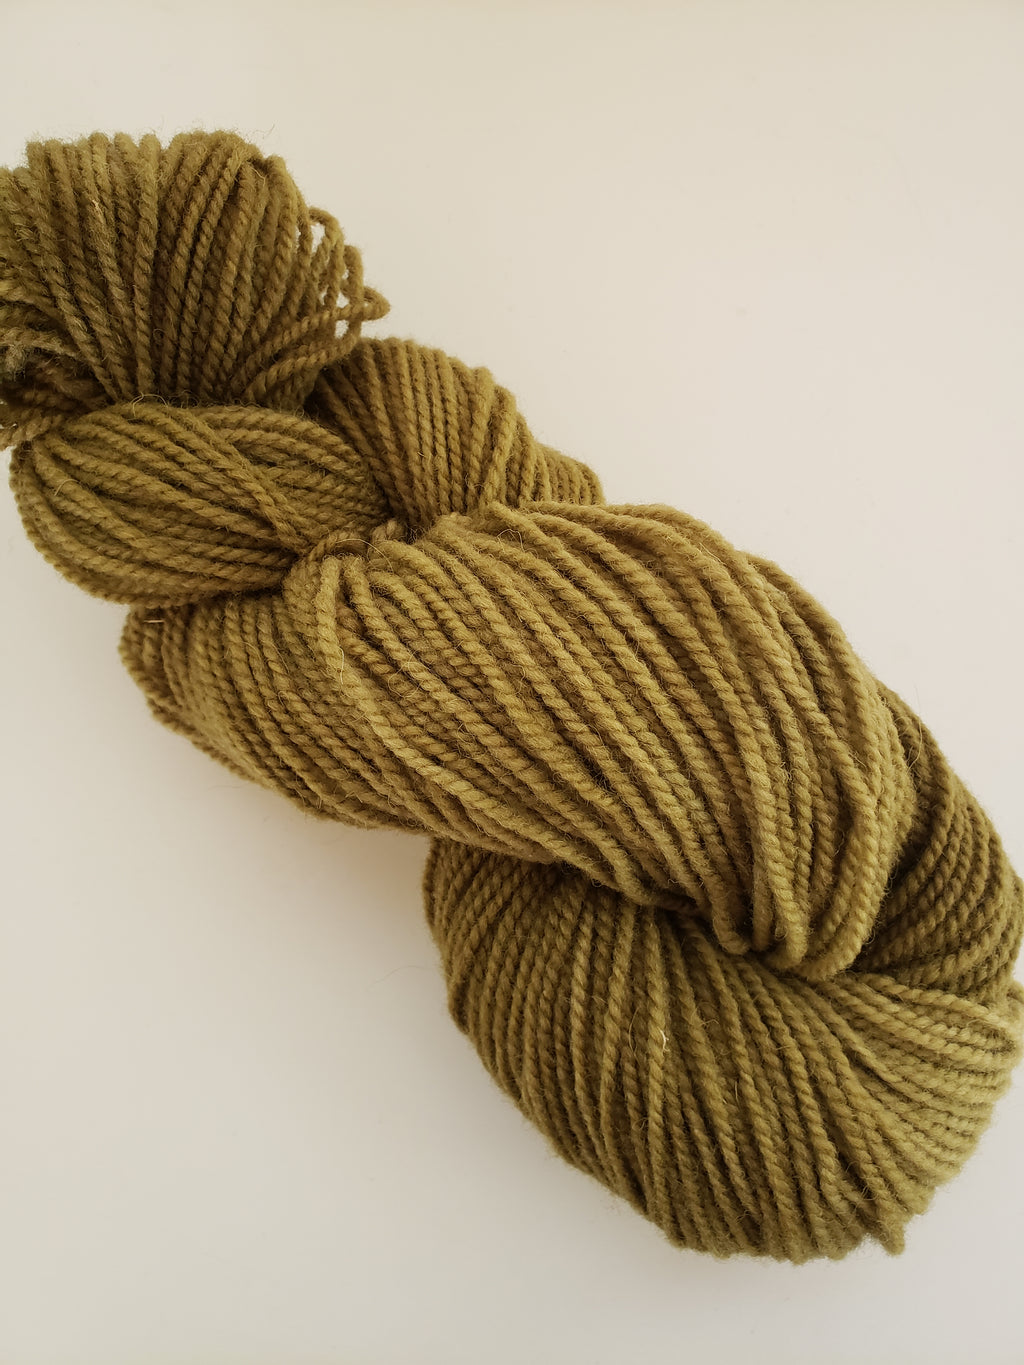 JOYEUSE NOEL-  Hand Dyed Shades of Green Worsted Yarn for Rug Hooking - RSS261